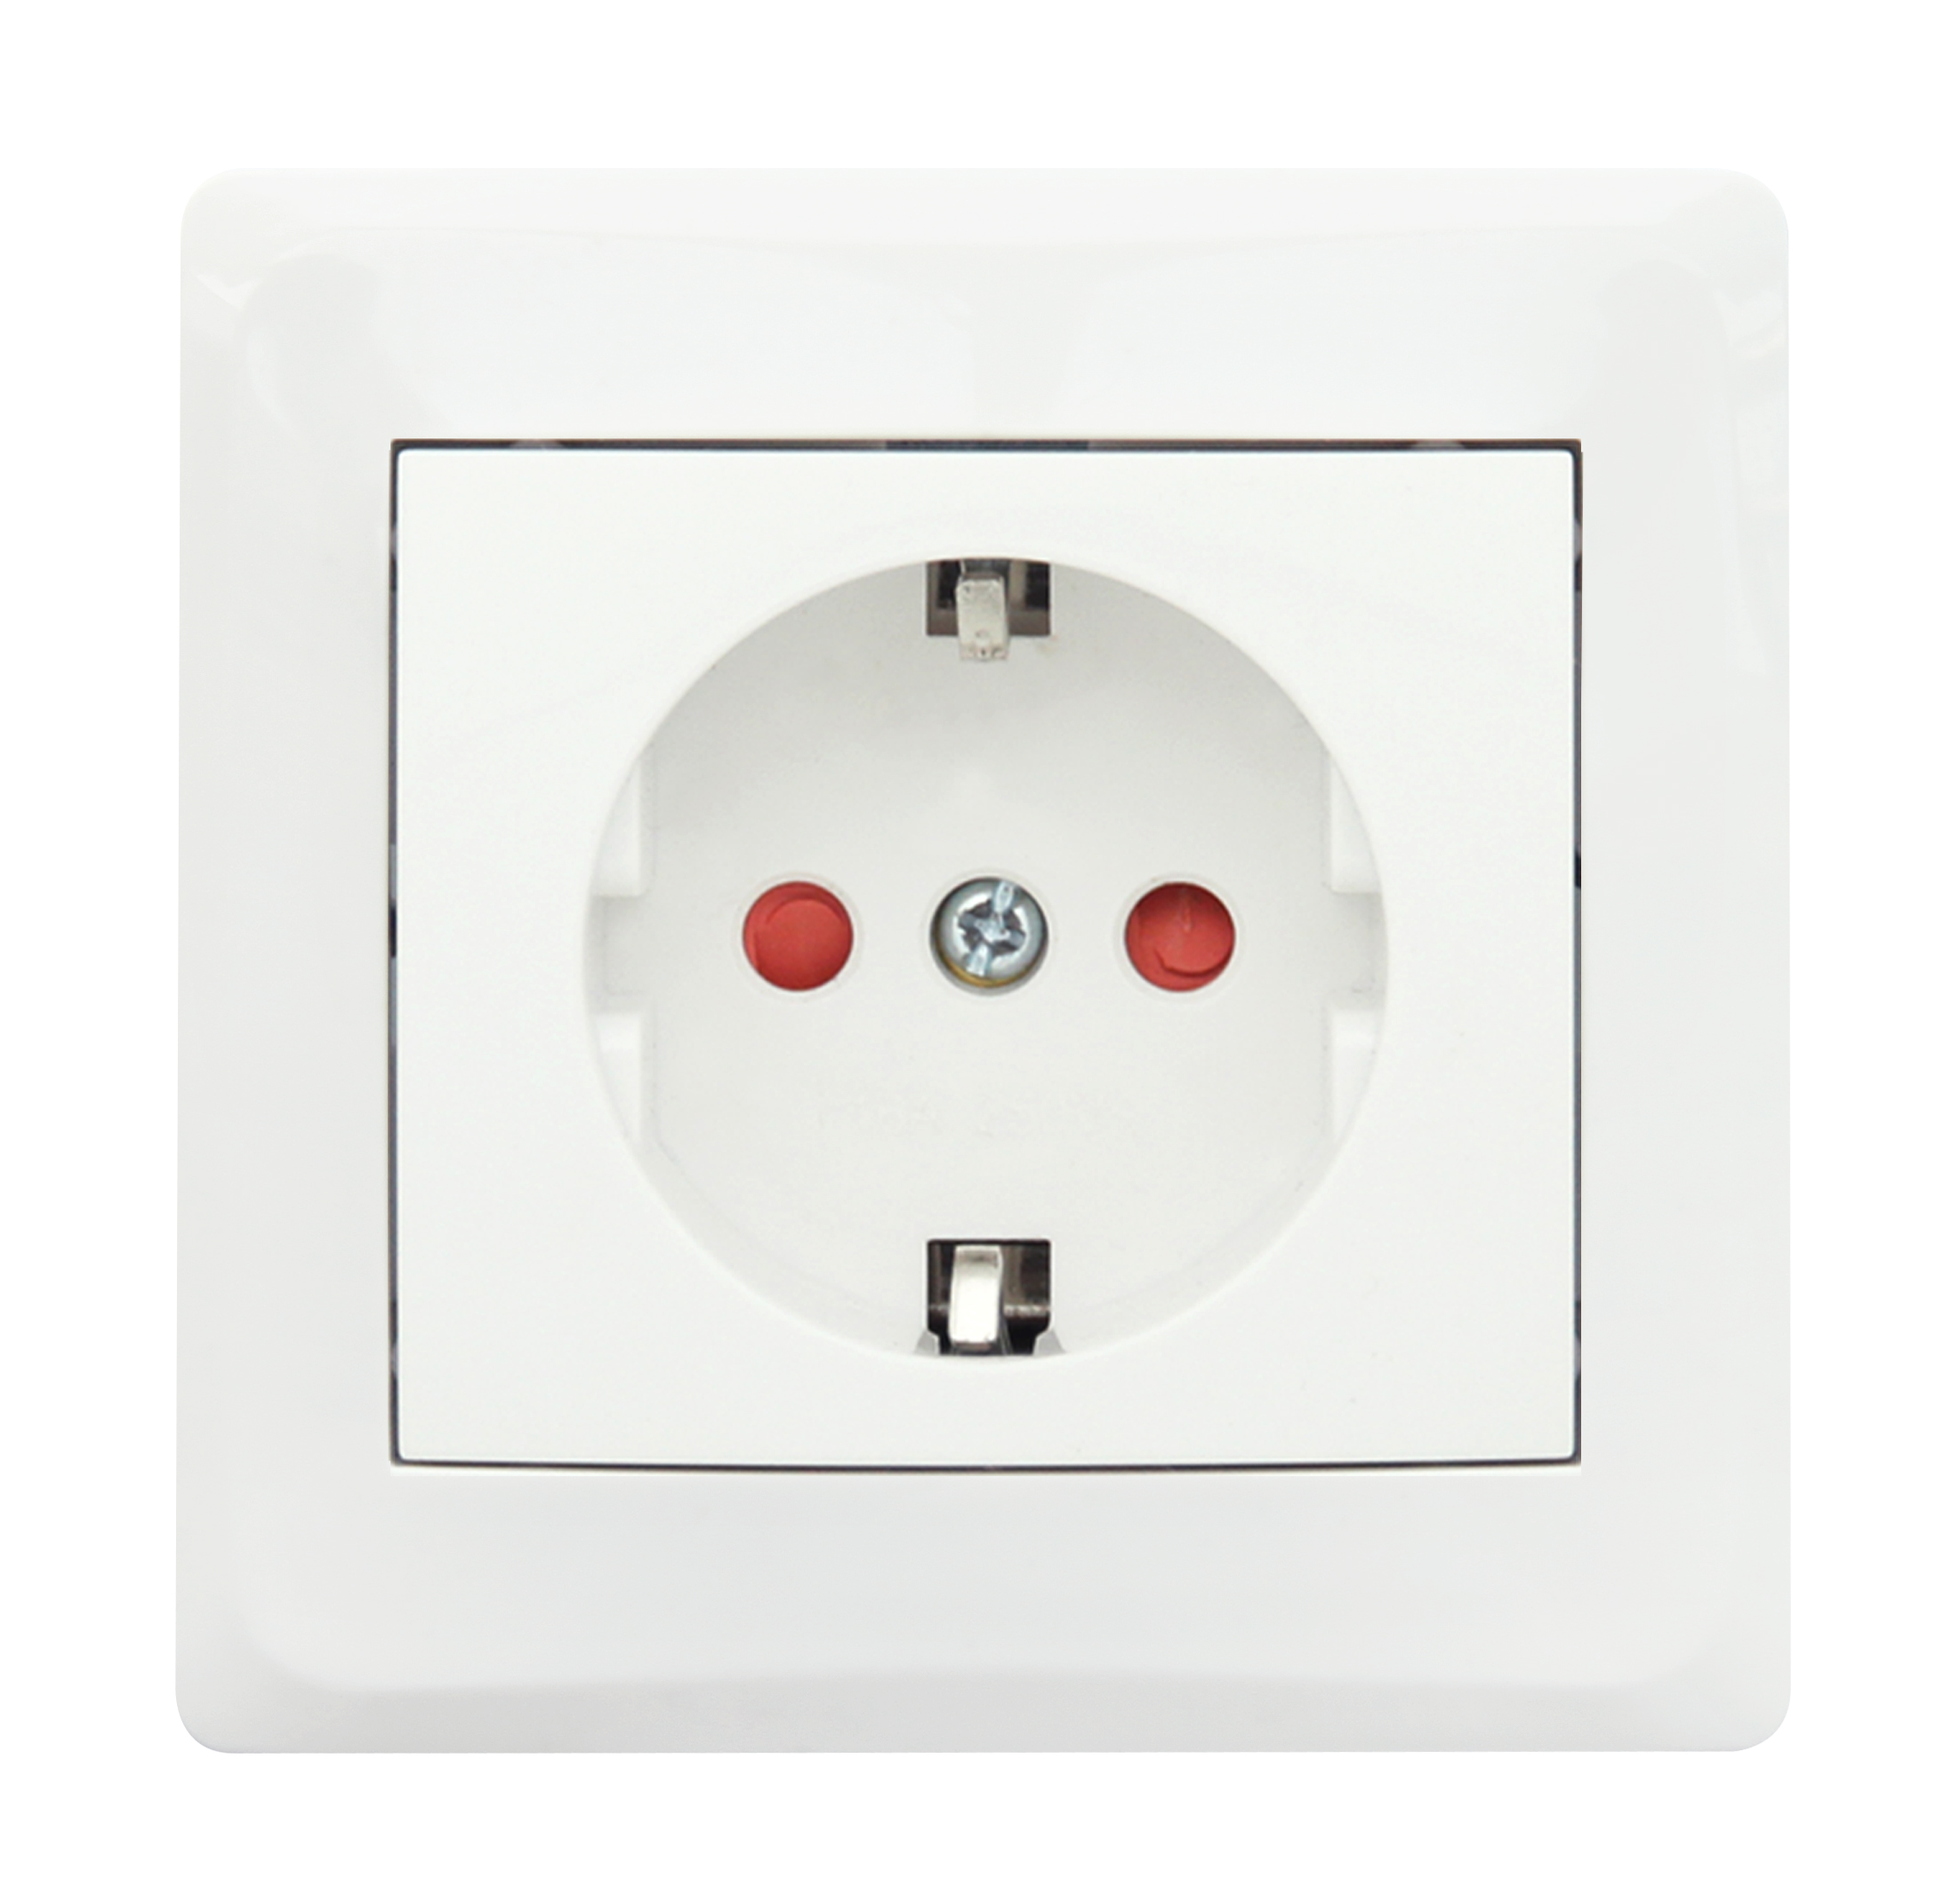 Child proof socket